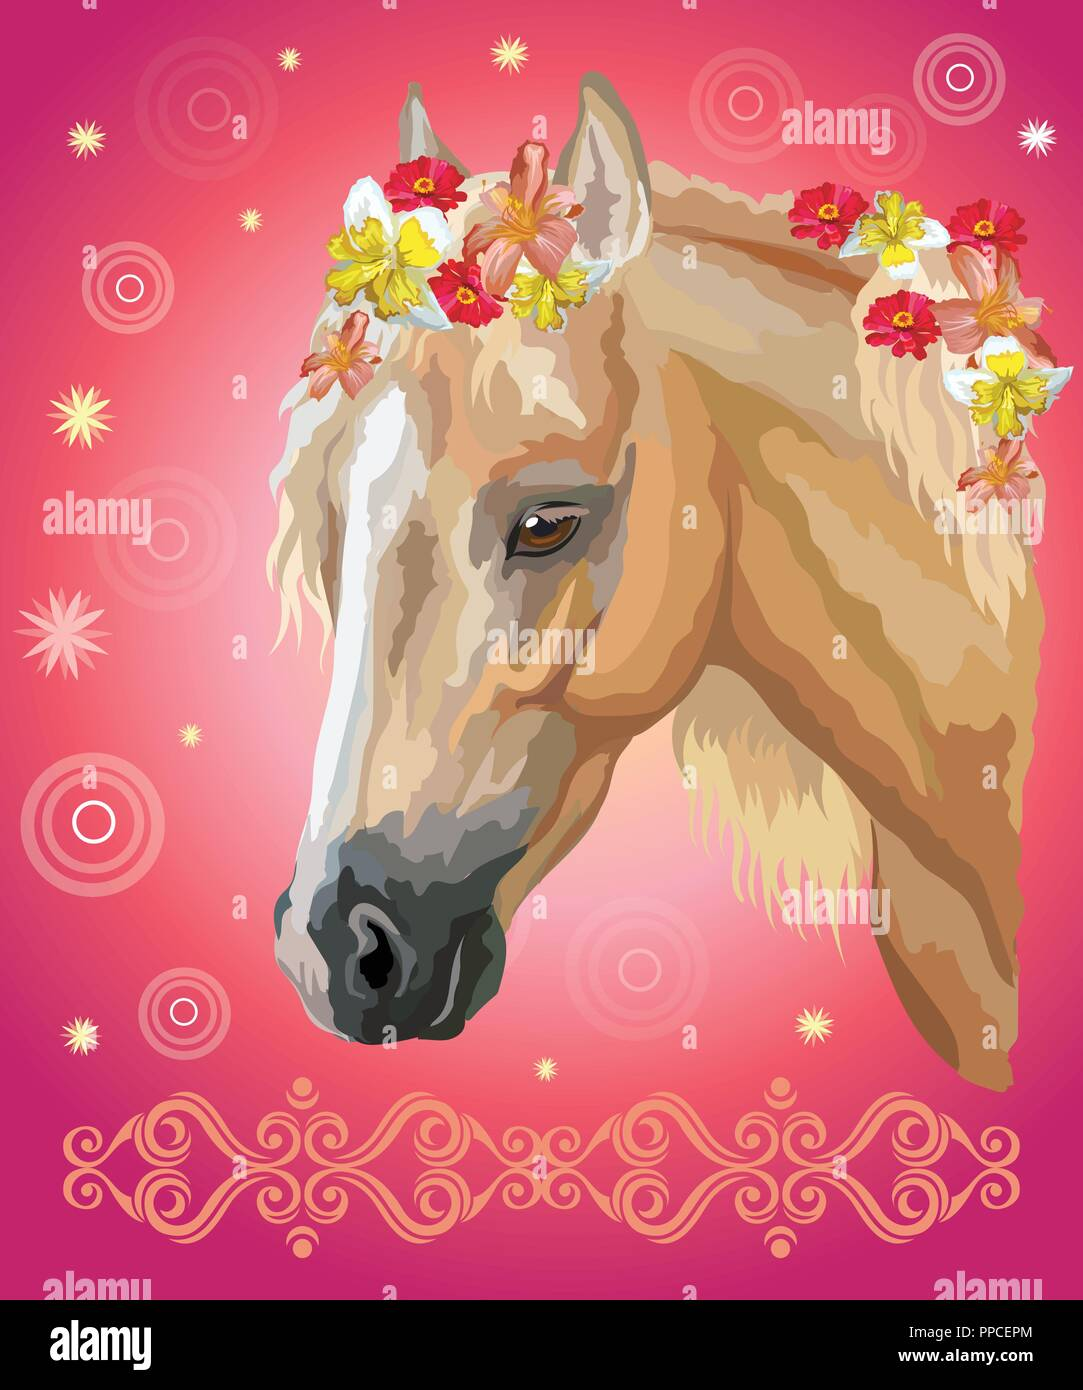 Vector Colorful Illustration Portrait Of Palomino Horse With Different Flowers In Mane Isolated On Pink Gradient Background With Decorative Ornament Stock Vector Image Art Alamy